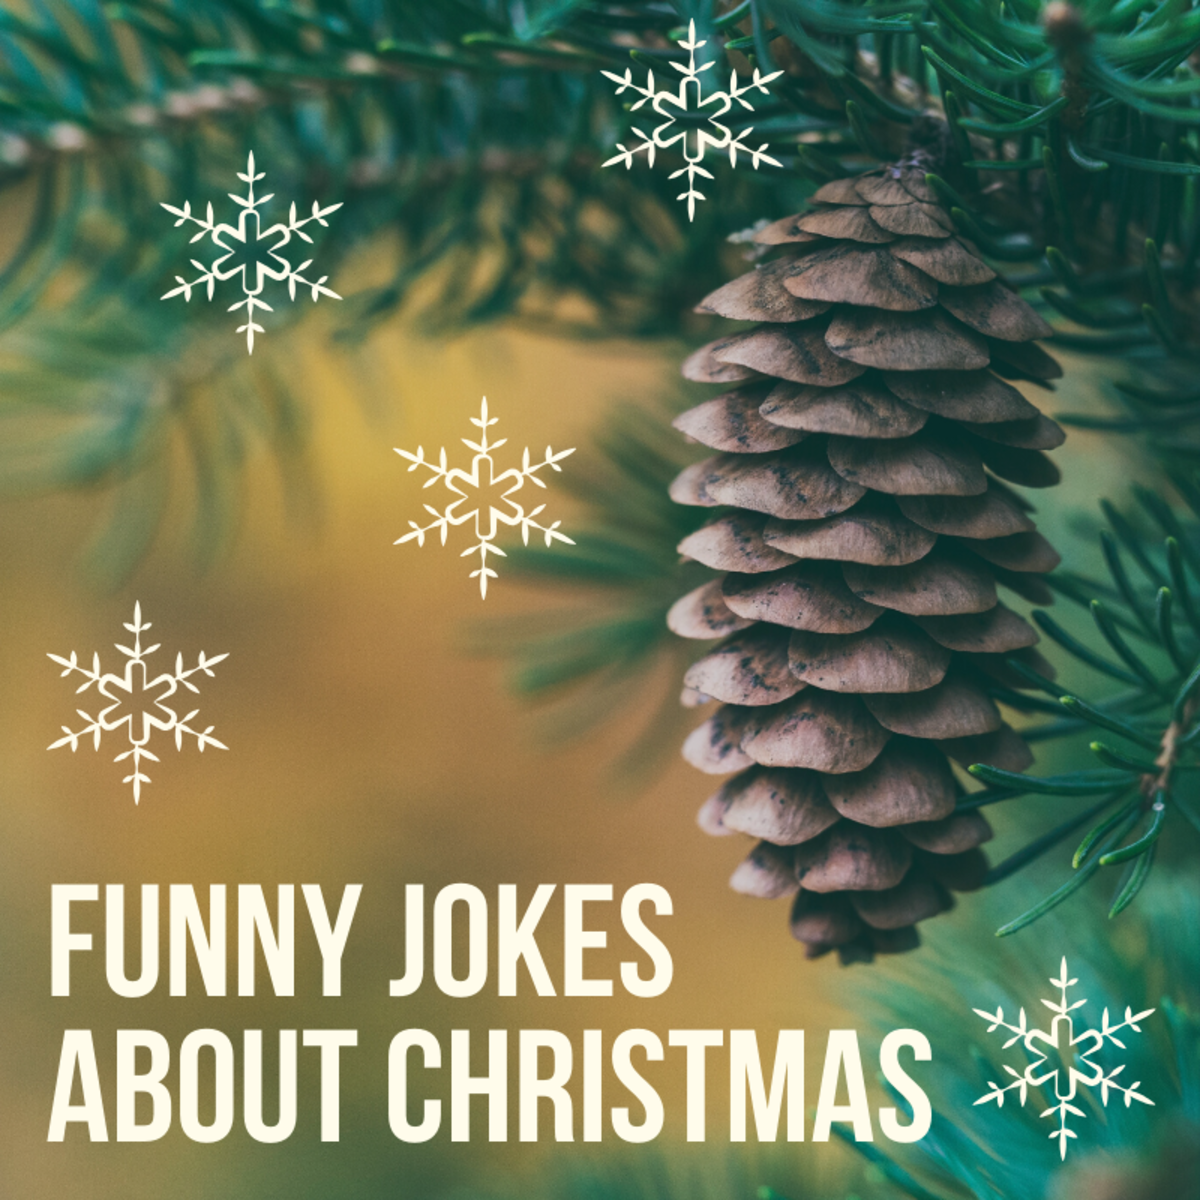 The Funniest Christmas Jokes